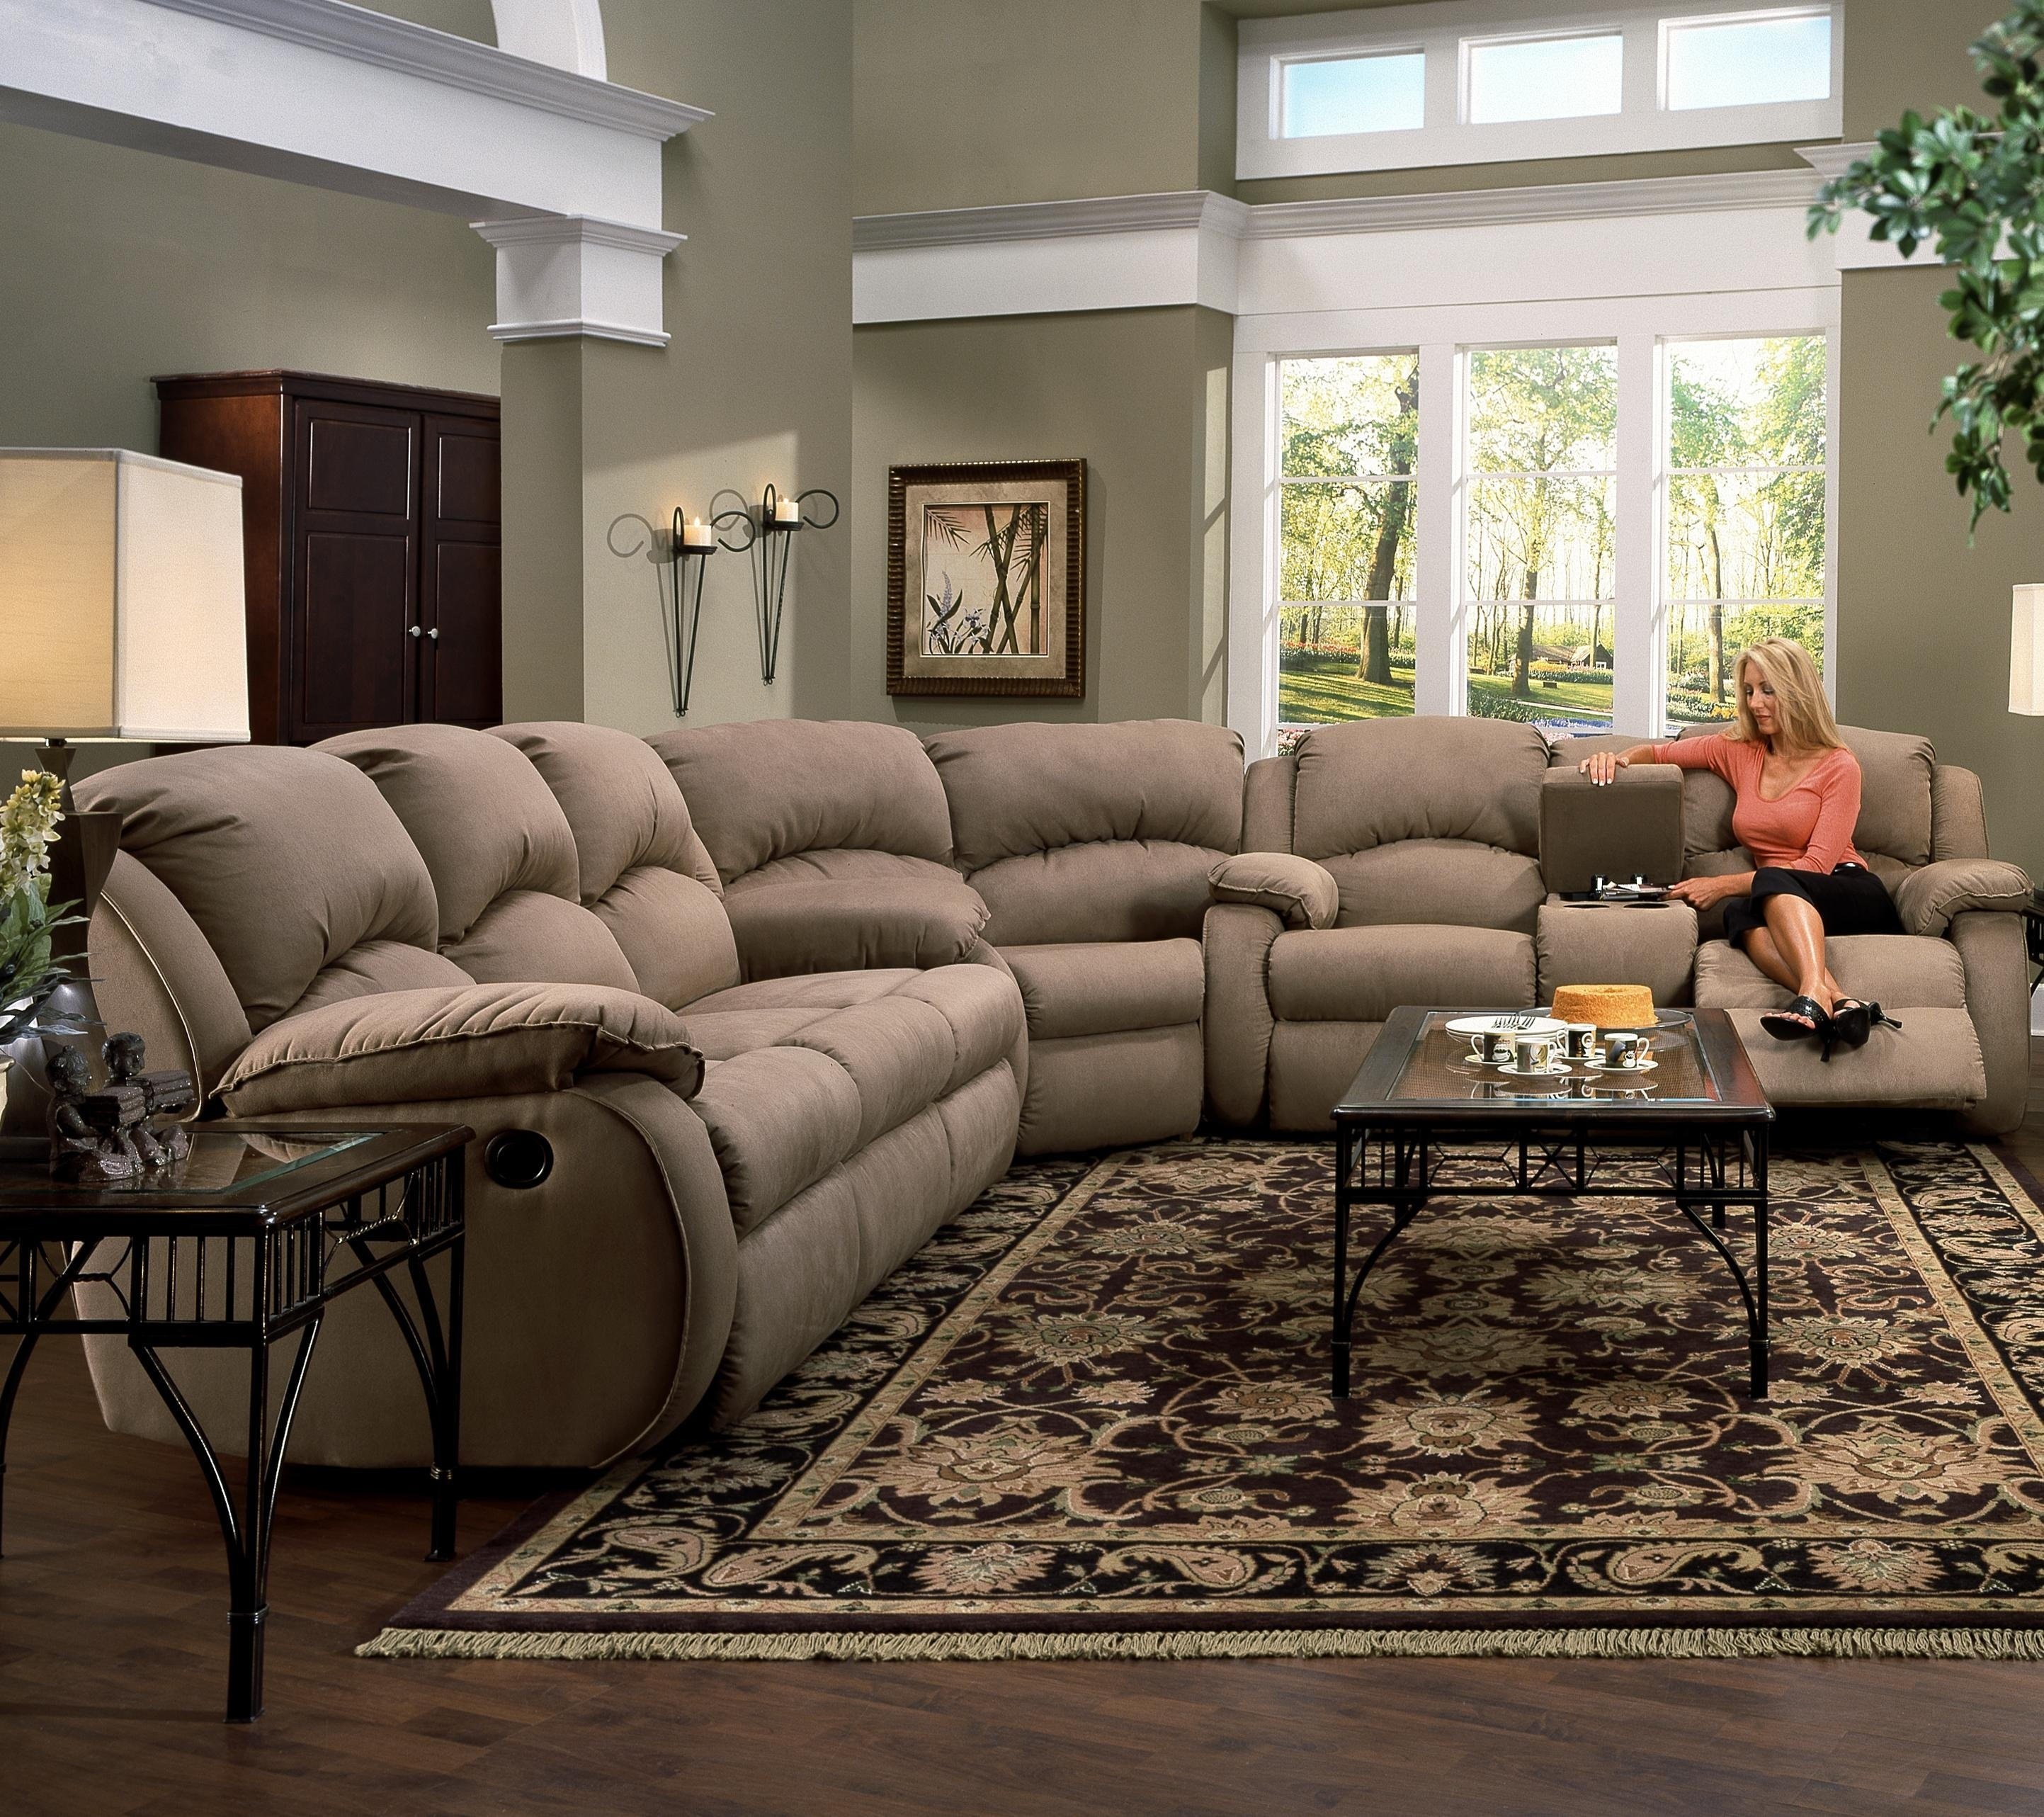 Reclining Sectional Sofas | Aifaresidency Throughout Sectional Sofas That Can Be Rearranged (View 4 of 10)